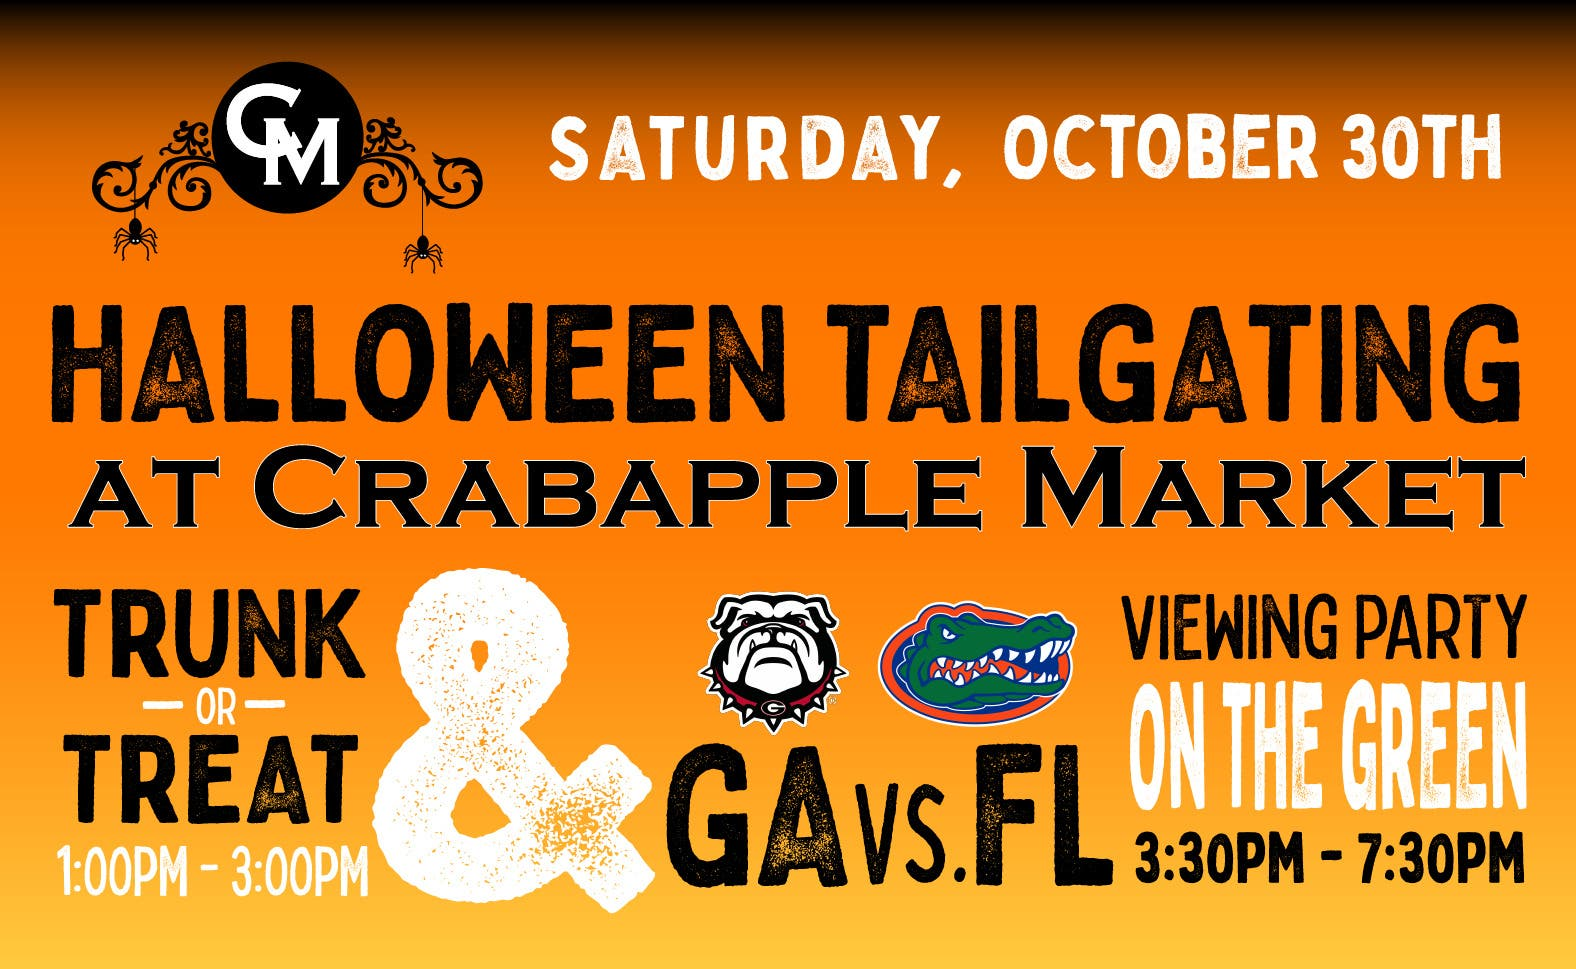 Halloween Tailgating - Trunk or Treat/GA vs. FL Football Game Viewing Party at Crabapple Market